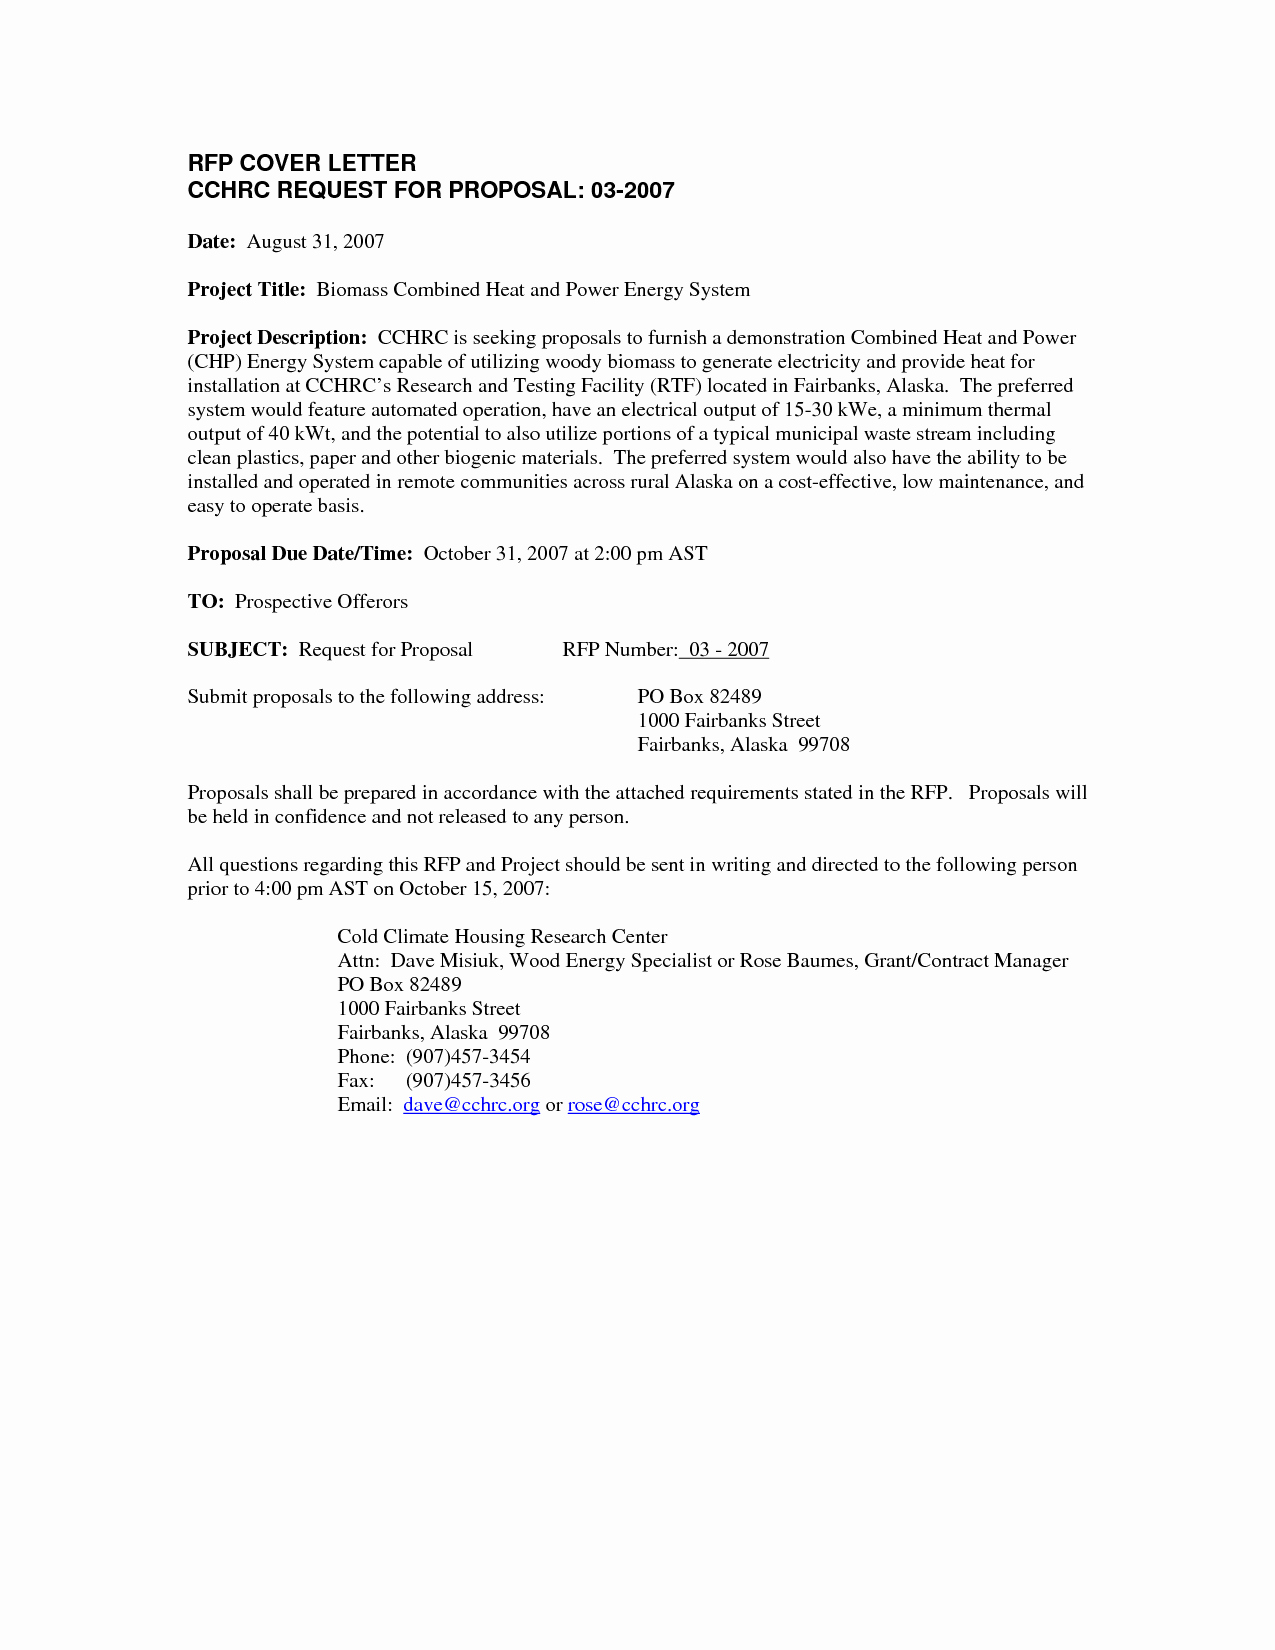 Cover Letter for Proposal Awesome Best S Of Request for Proposal Letter Example